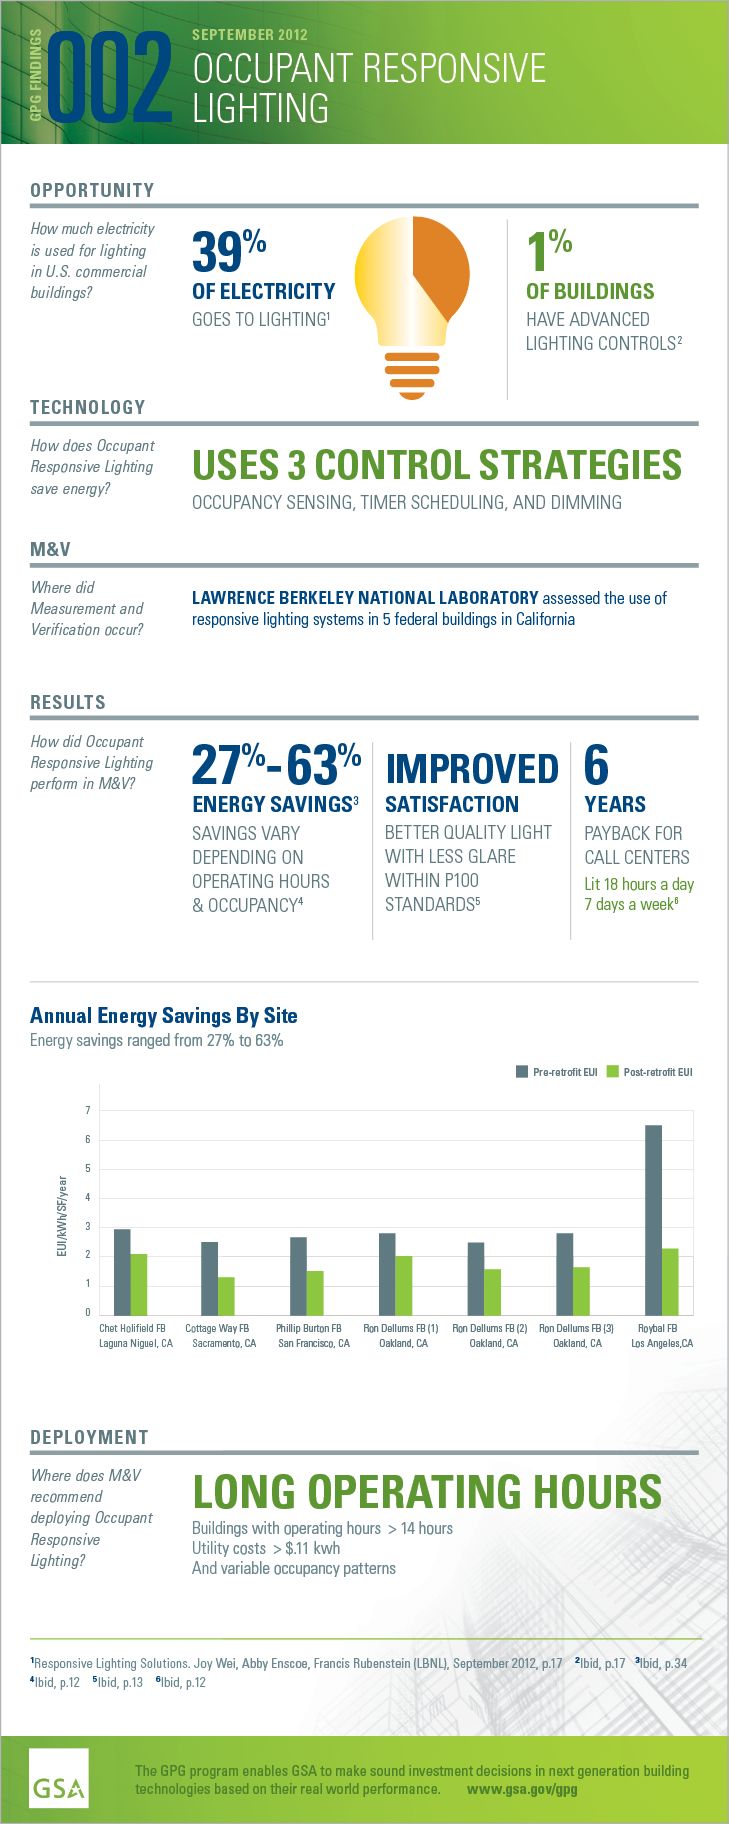 GPG Findings 002, September 2012. Occupant Responsive Lighting. Opportunity: How much electricity is used for lighting in U.S. commercial buildings? 39% of electricity goes to lighting. 1% of buildings have advanced lighting controls. Technology: How does Occupant Responsive Lighting save energy? Uses 3 control strategies. Occupancy sensing, timer scheduling, and dimming. Measurement and Verification. Where did M and V occur? Lawrence Berkeley National Laboratory assessed the use of responsive lighting systems in 5 federal buildings in California. Results: How did Occupant Responsive Lighting perform in M and V? 27%-63% energy savings vary depending on operating hours. Improved satisfaction. Better quality light with less glare within P100 standards. 6 years payback for call centers. Lit 18 hours a day 7 days a week. Deployment: Where does M and V recommend deploying Occupant Responsive Lighting? Long Operating Hours. Buildings with operating hours greater than 14 hours, utility costs greater than $.11 kwh, and variable occupancy patterns.